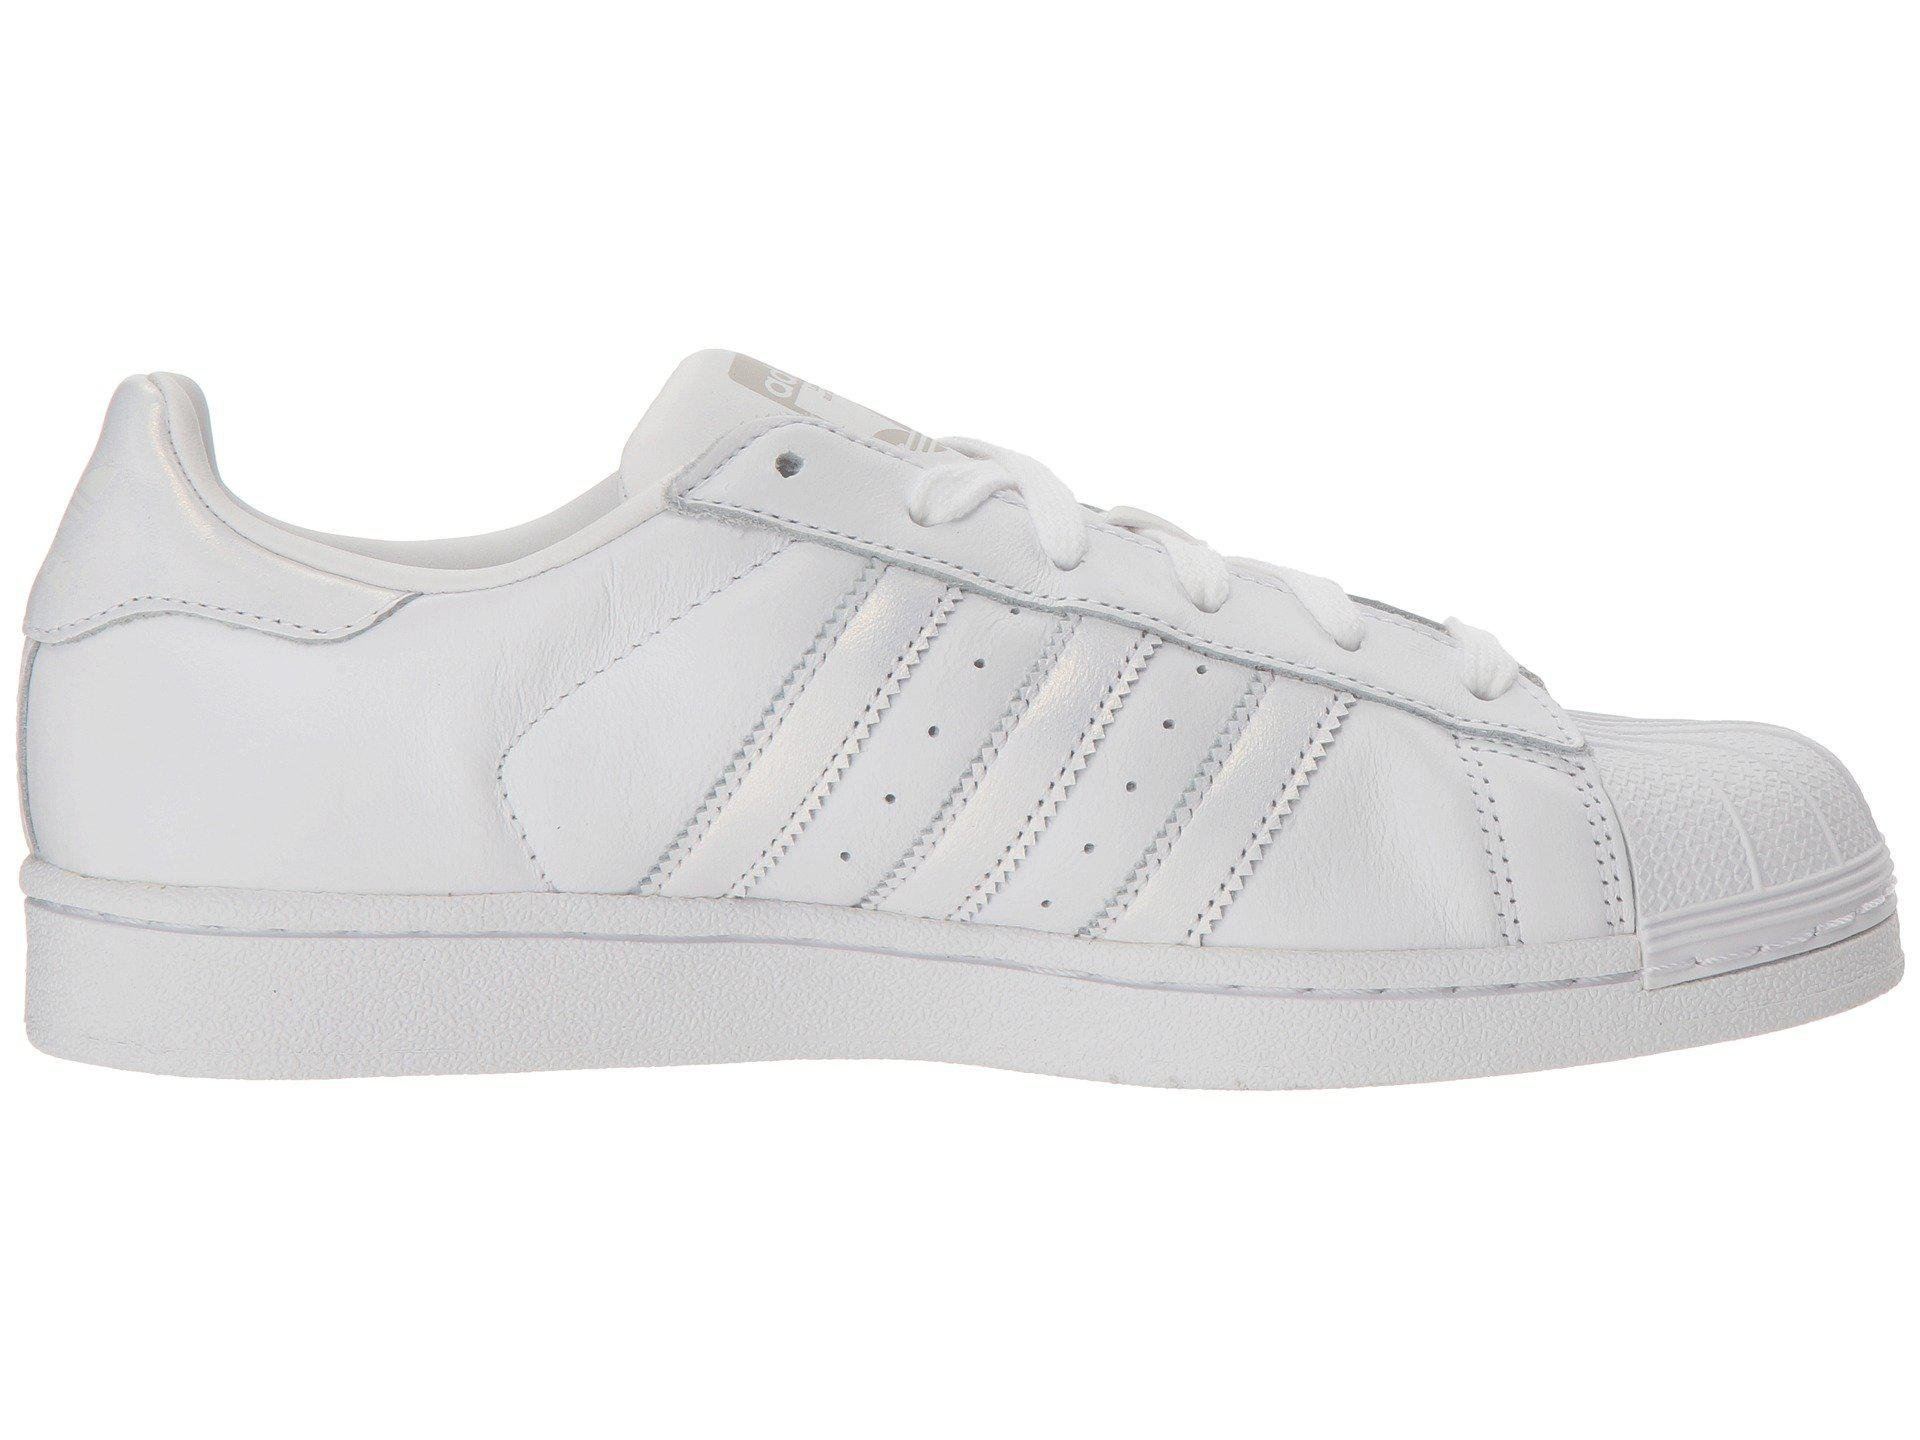 detailed look 3a7c1 7206e adidas Originals Superstar W (white red Night silver Metallic) Women s  Classic Shoes in White - Lyst